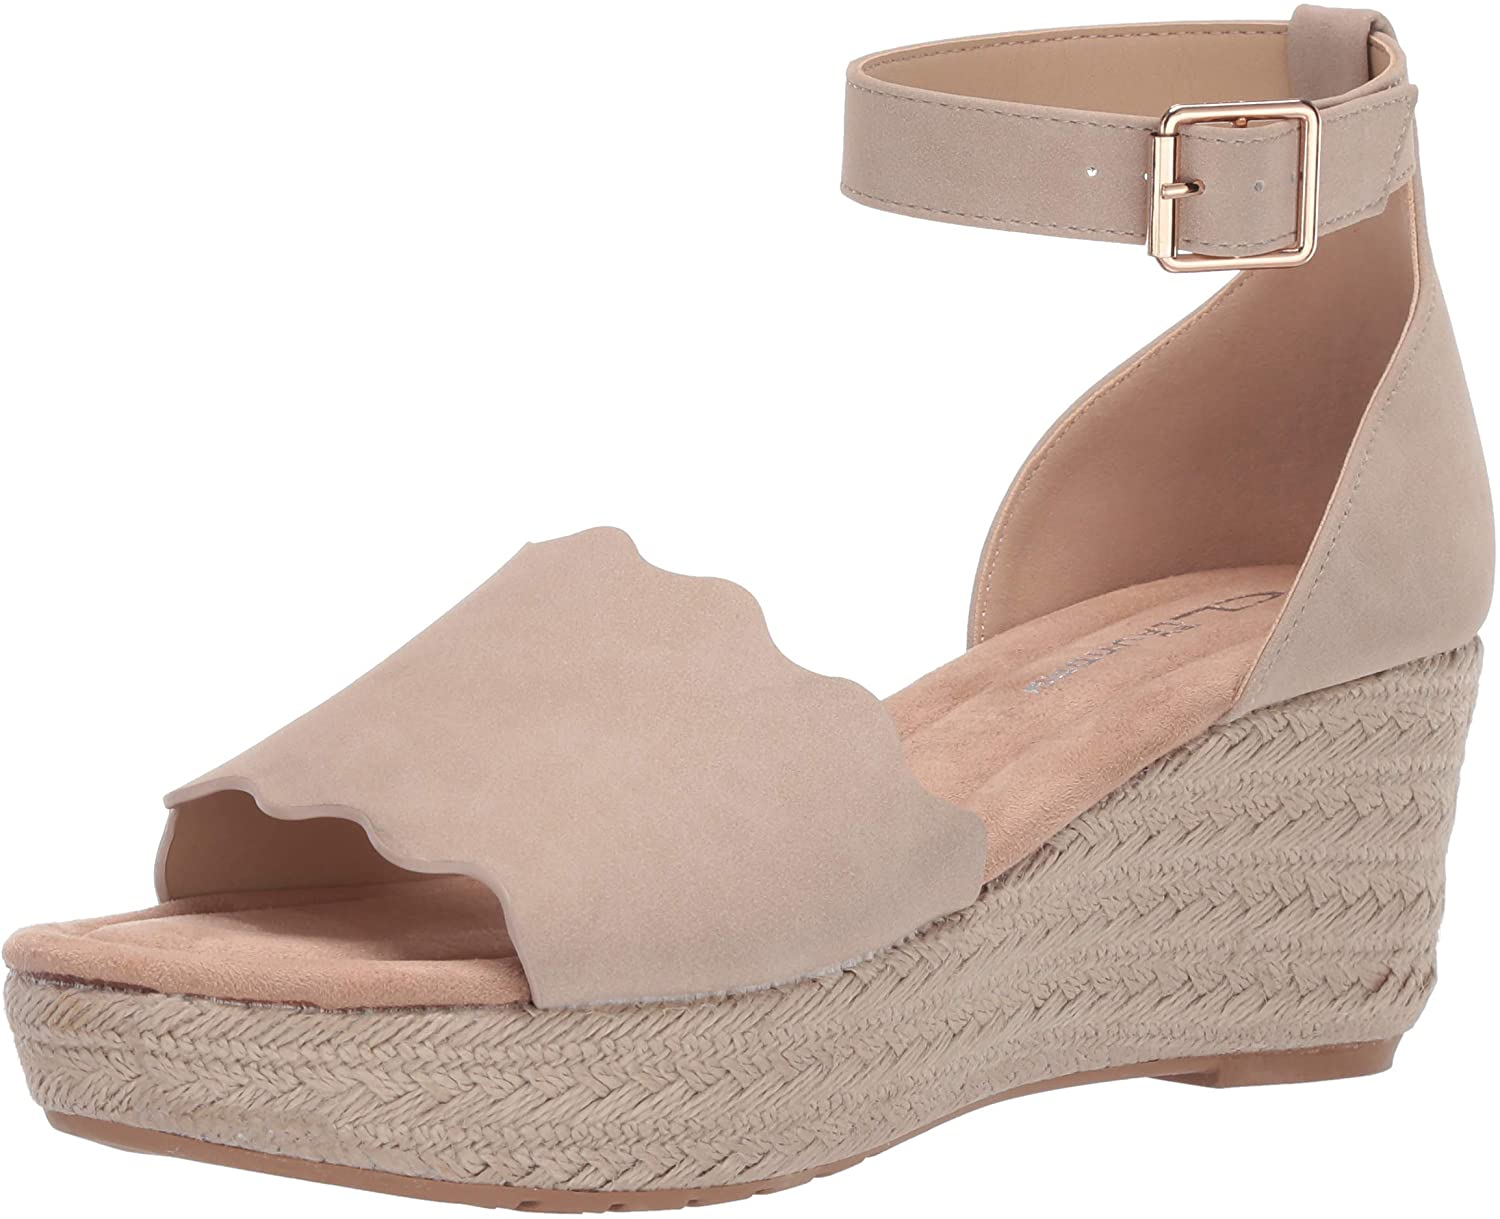 Now on sale Ranking TOP14 CL by Chinese Laundry Sandal Women's Wedge